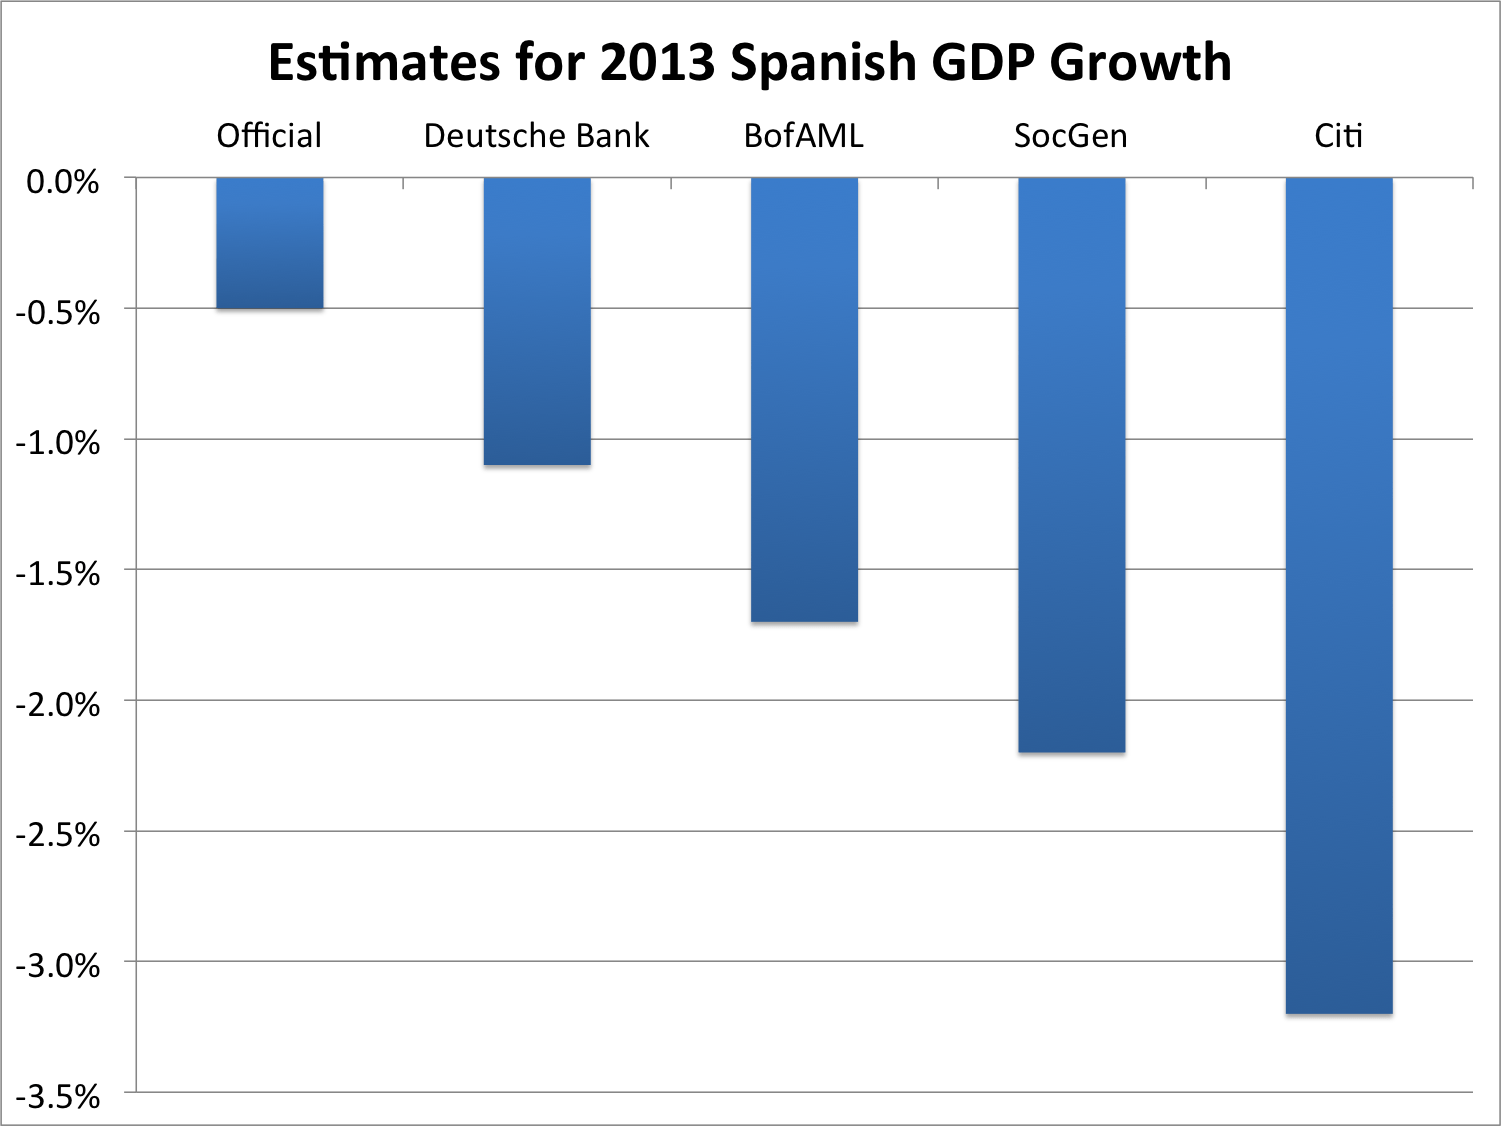 Spain's economy experiences a deep recession in 2013